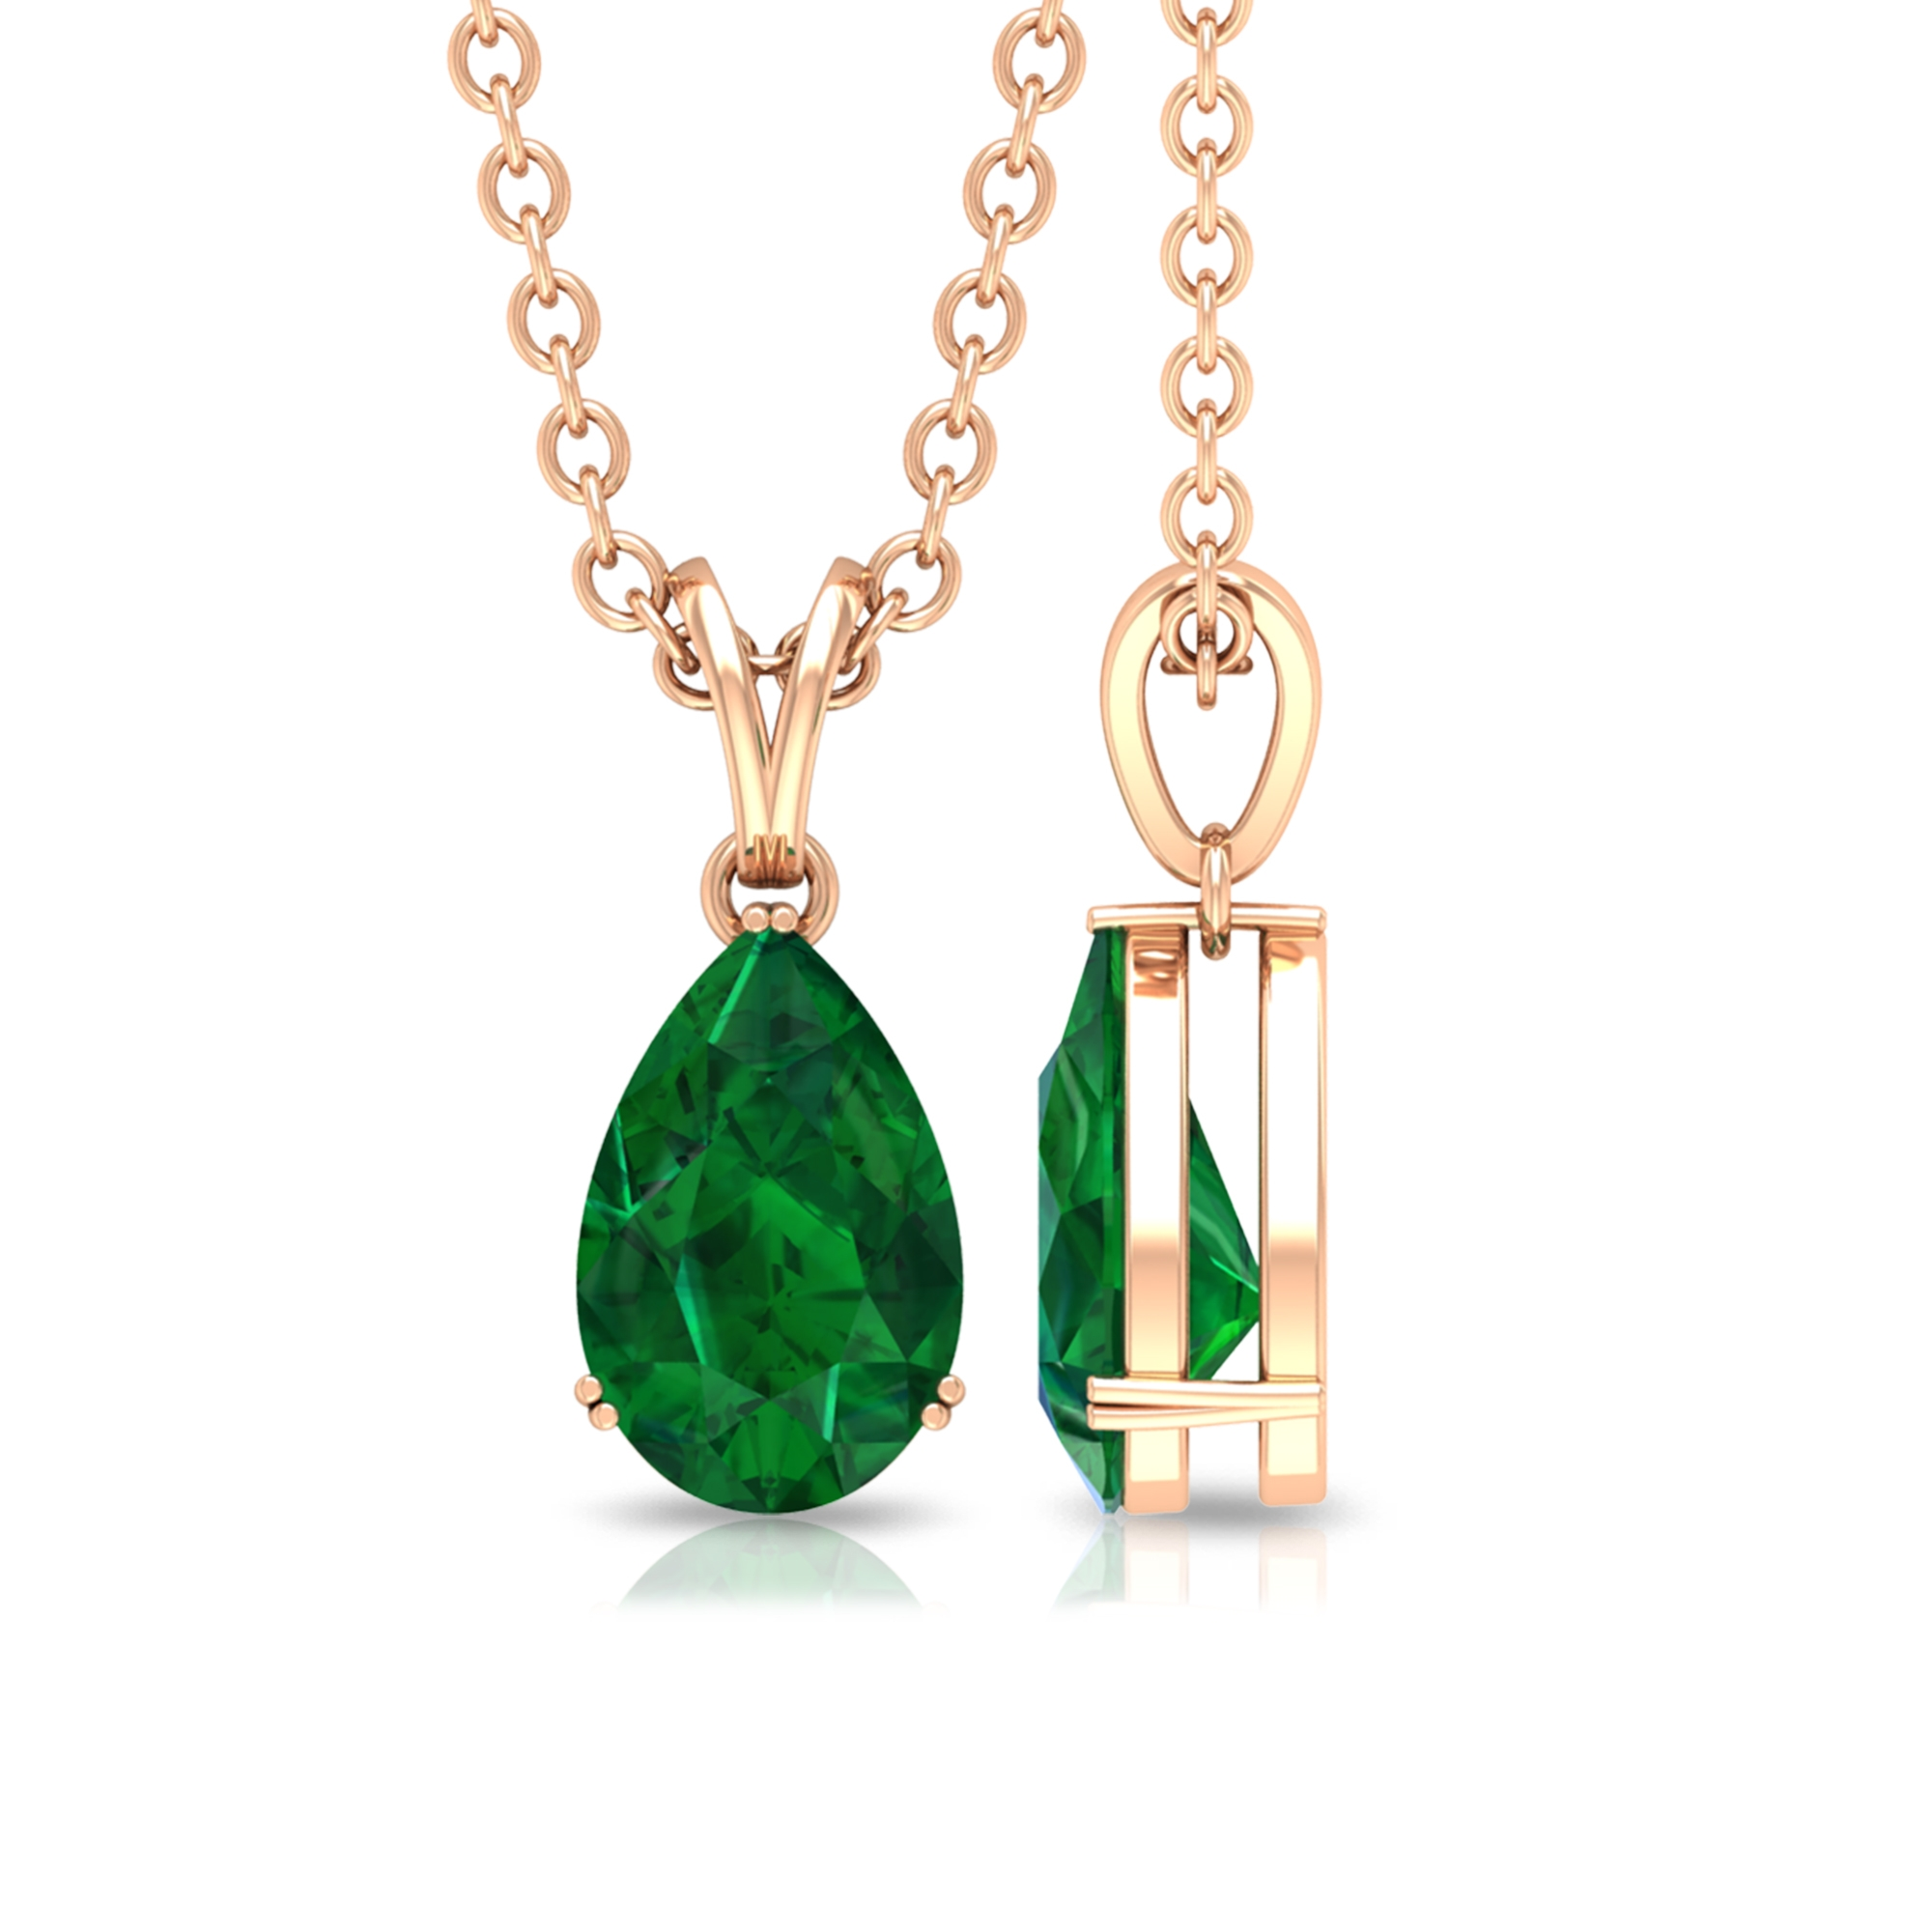 4.5X7 MM Teardrop Emerald Solitaire Pendant in Double Prong Setting with Rabbit Ear Bail